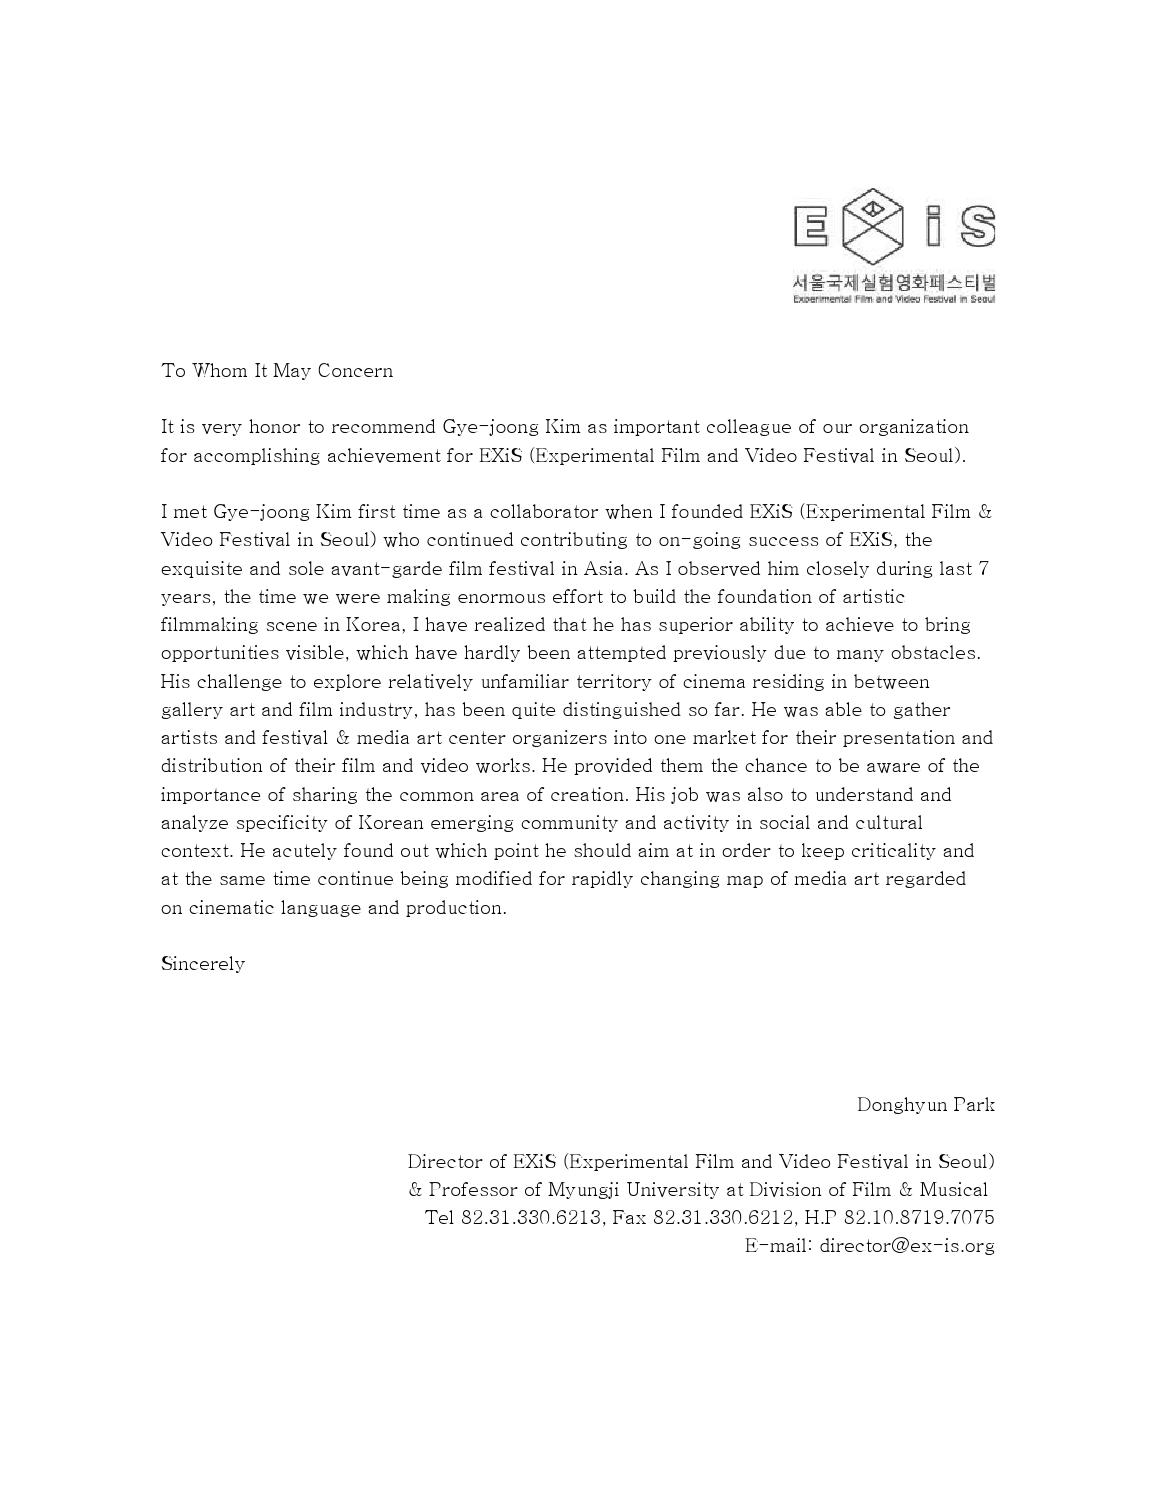 sample recommendation letter for eb1a - Monza berglauf-verband com